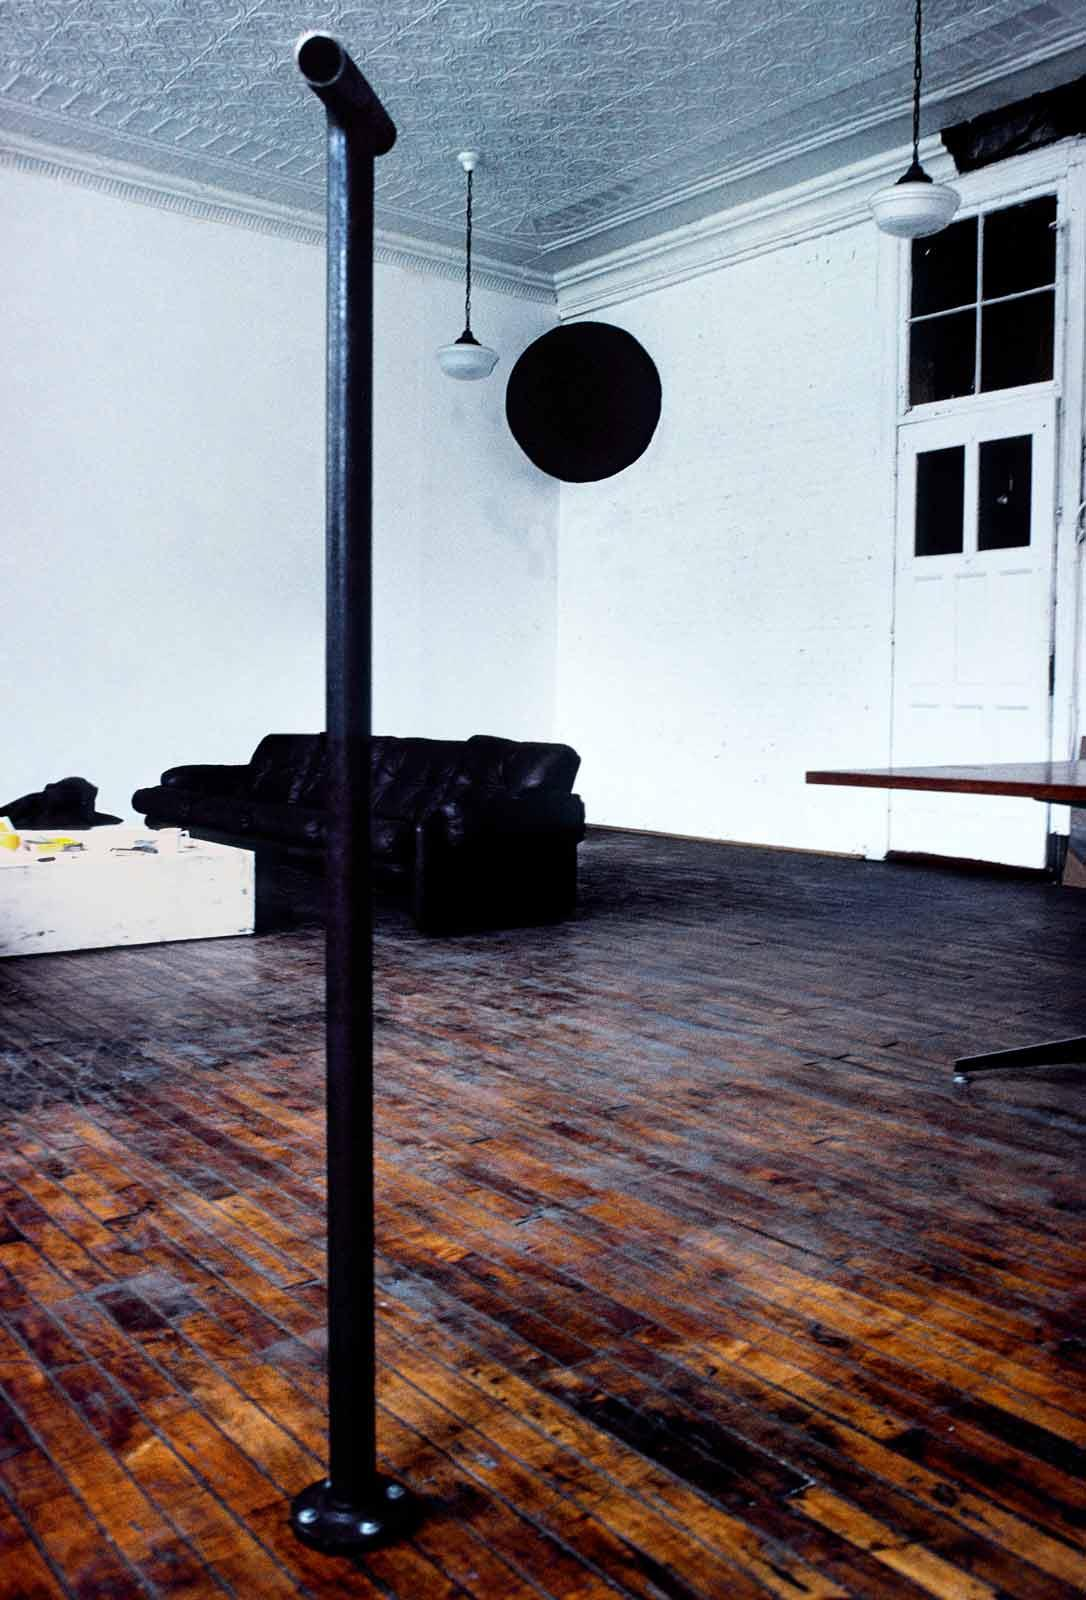 Stell pipe in a room with wood floors, white walls, and a black circle painted in the corner of the room.